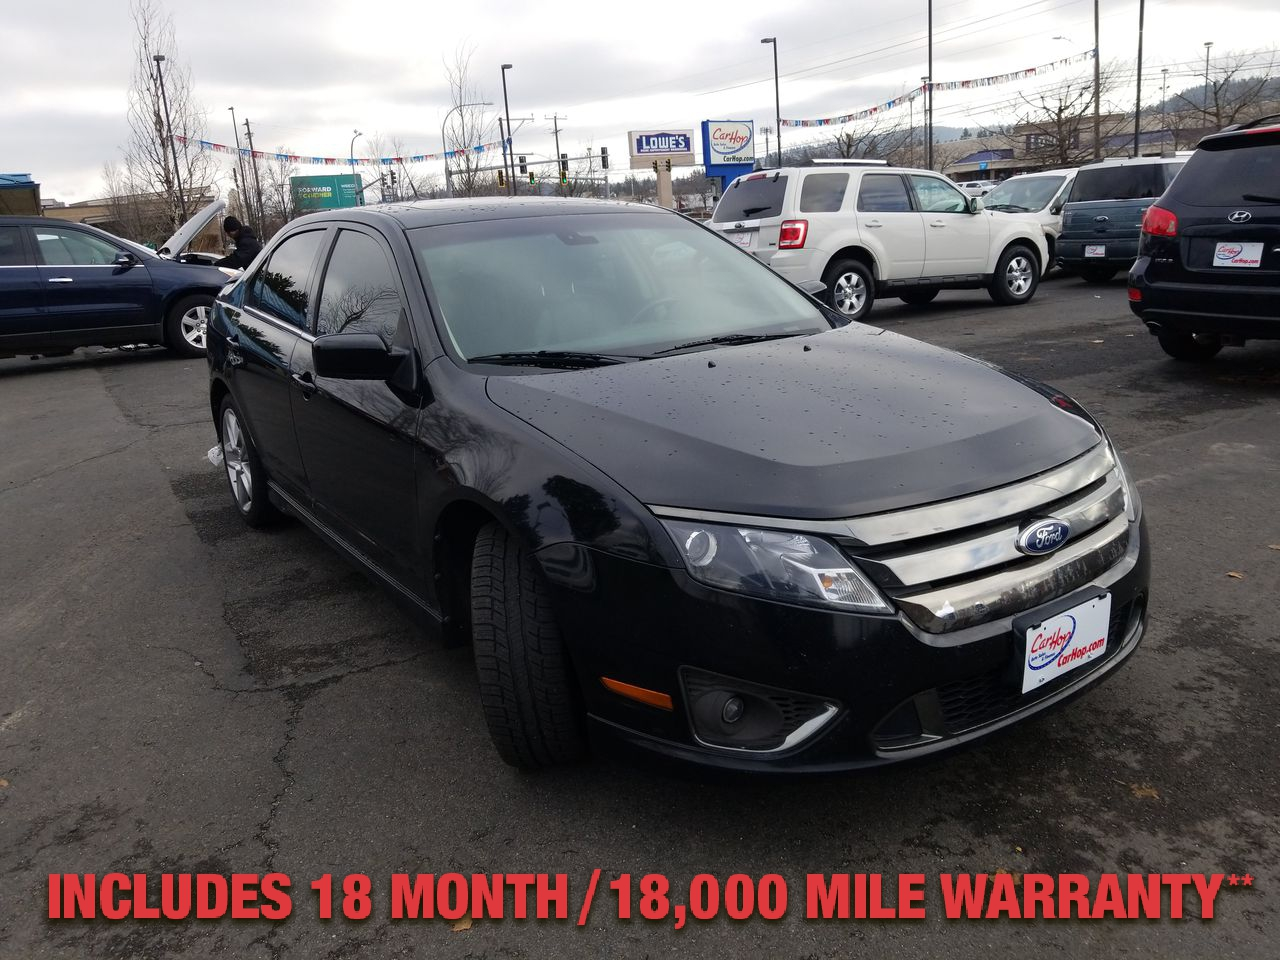 Pre-Owned 2012 FORD FUSION SPORT SEDA